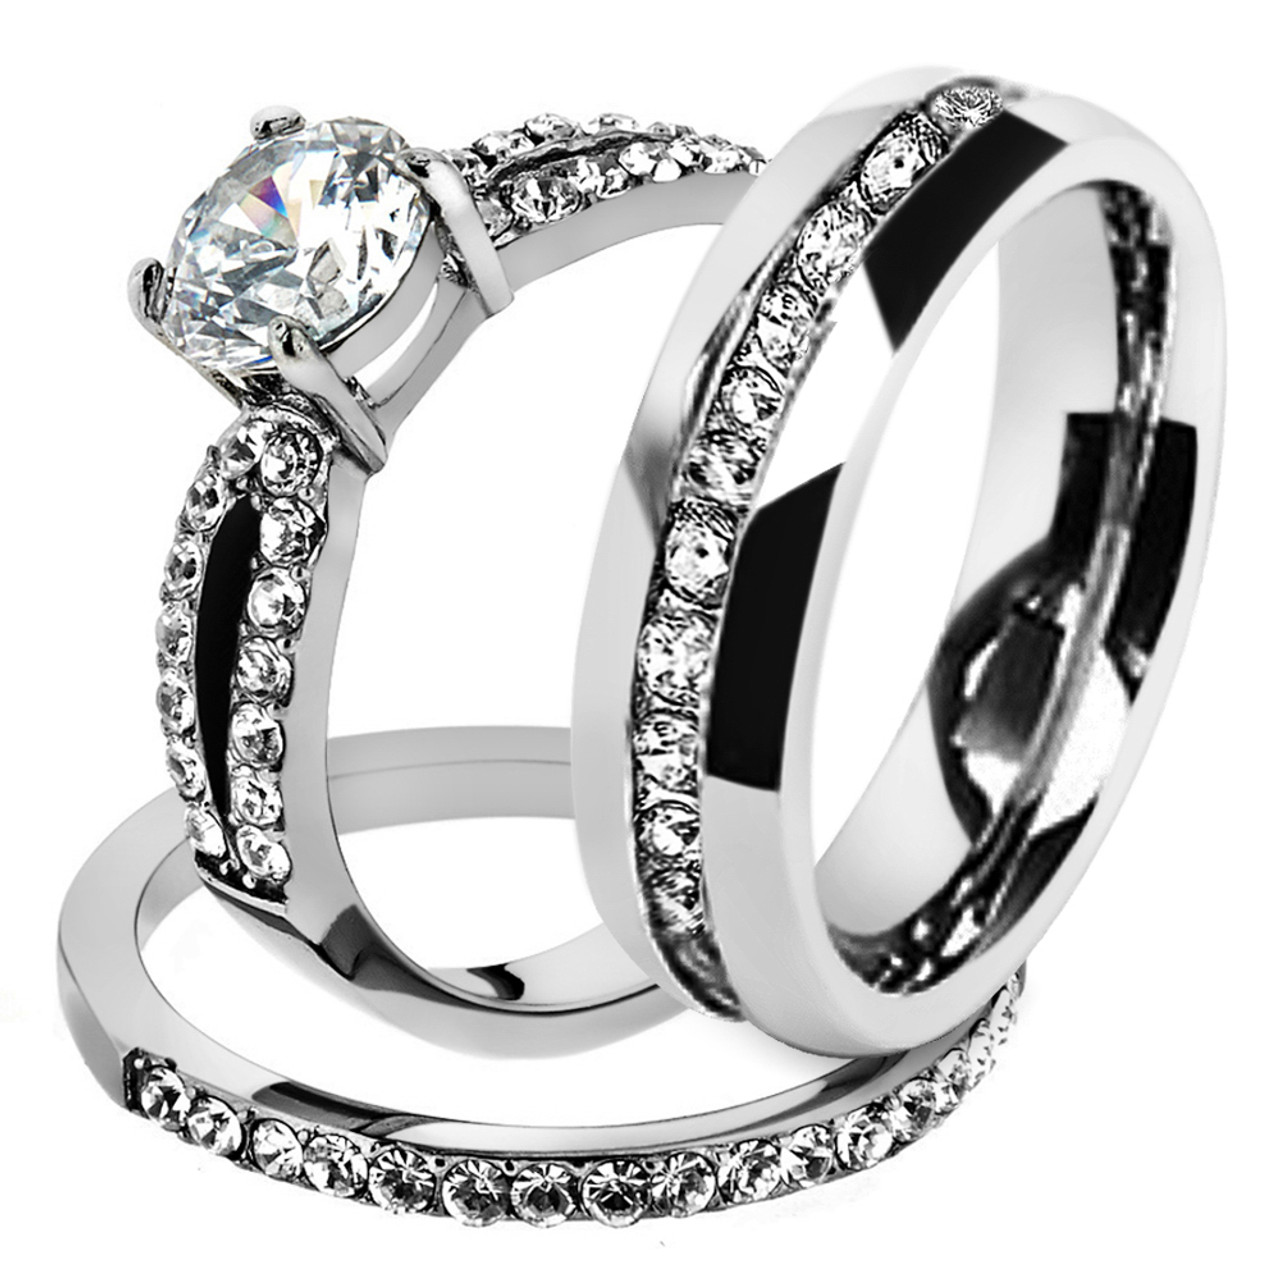 ST2292-ARH1570 His & Hers Stainless Steel 1 25 Ct Cz Bridal